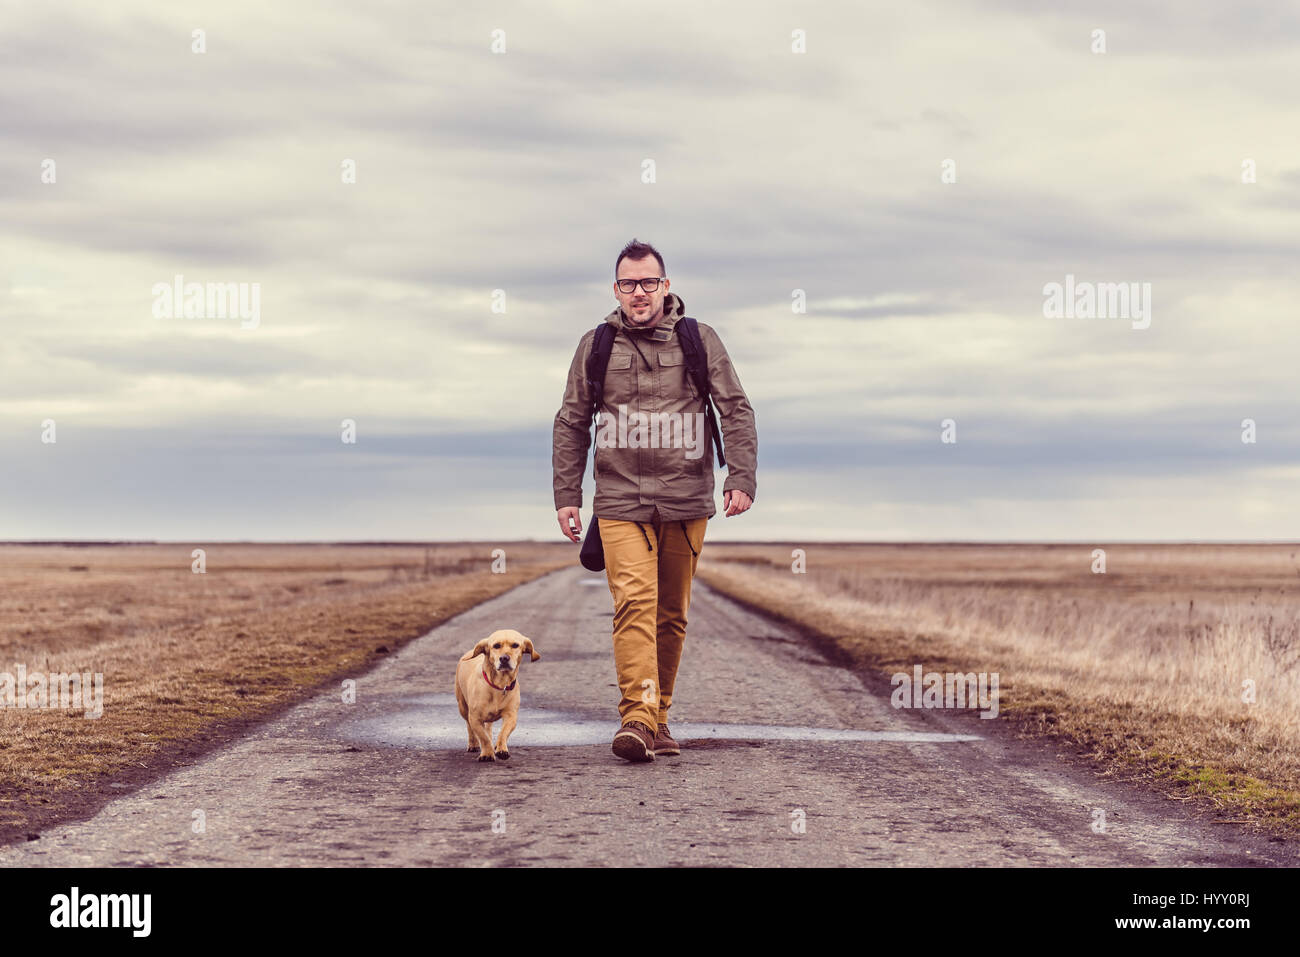 Hiker and dog walking down a road on a cloudy day - Stock Image